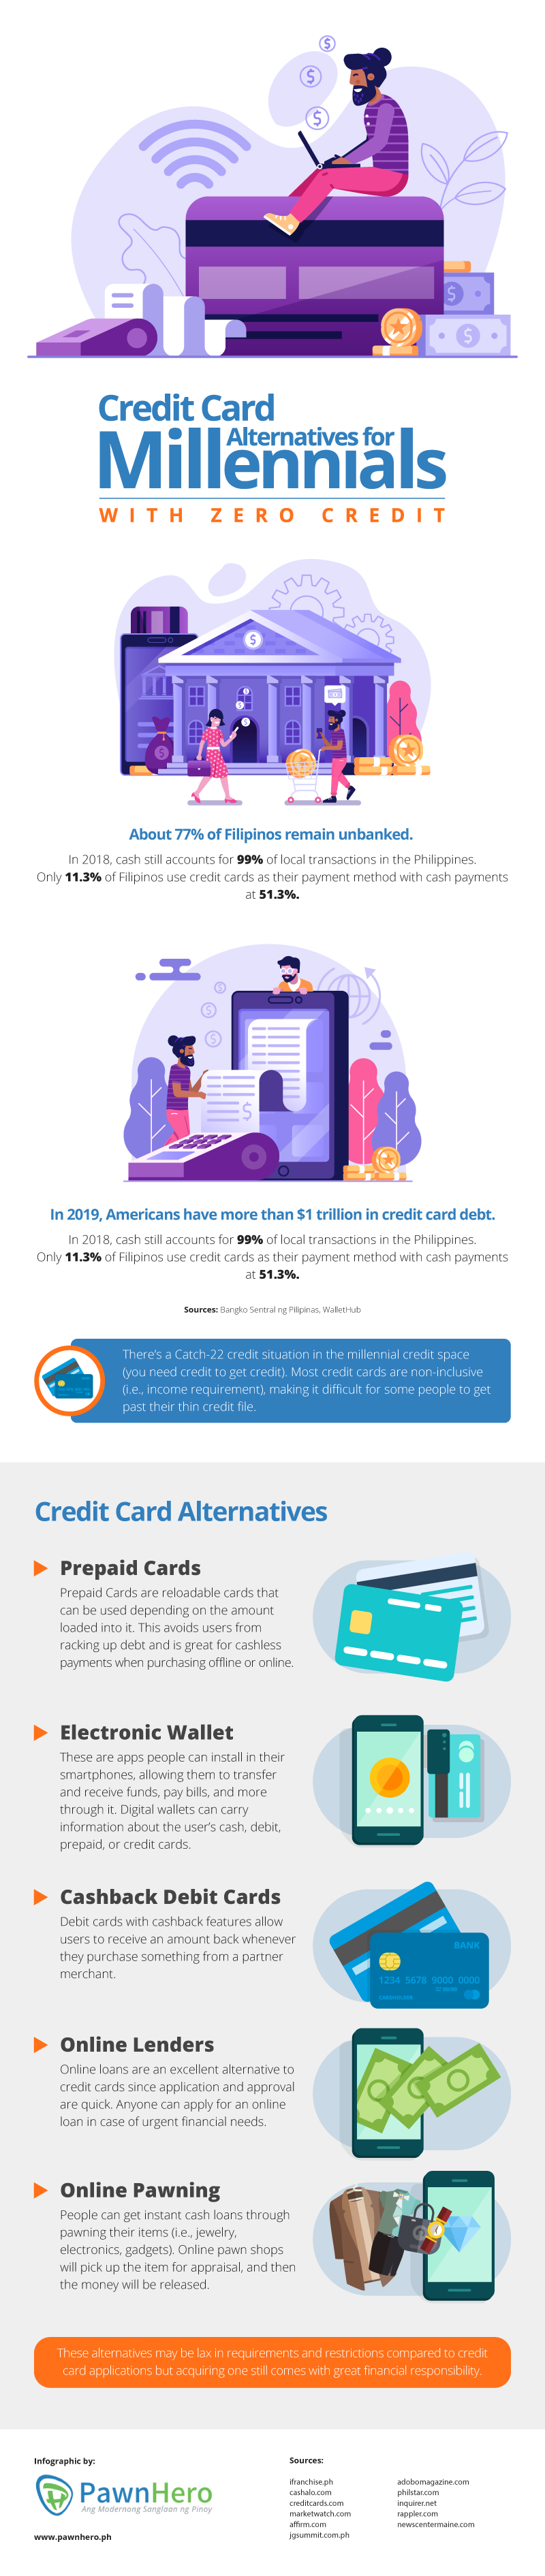 Infographic about Credit Card Alternatives for Millennials With Zero Credit